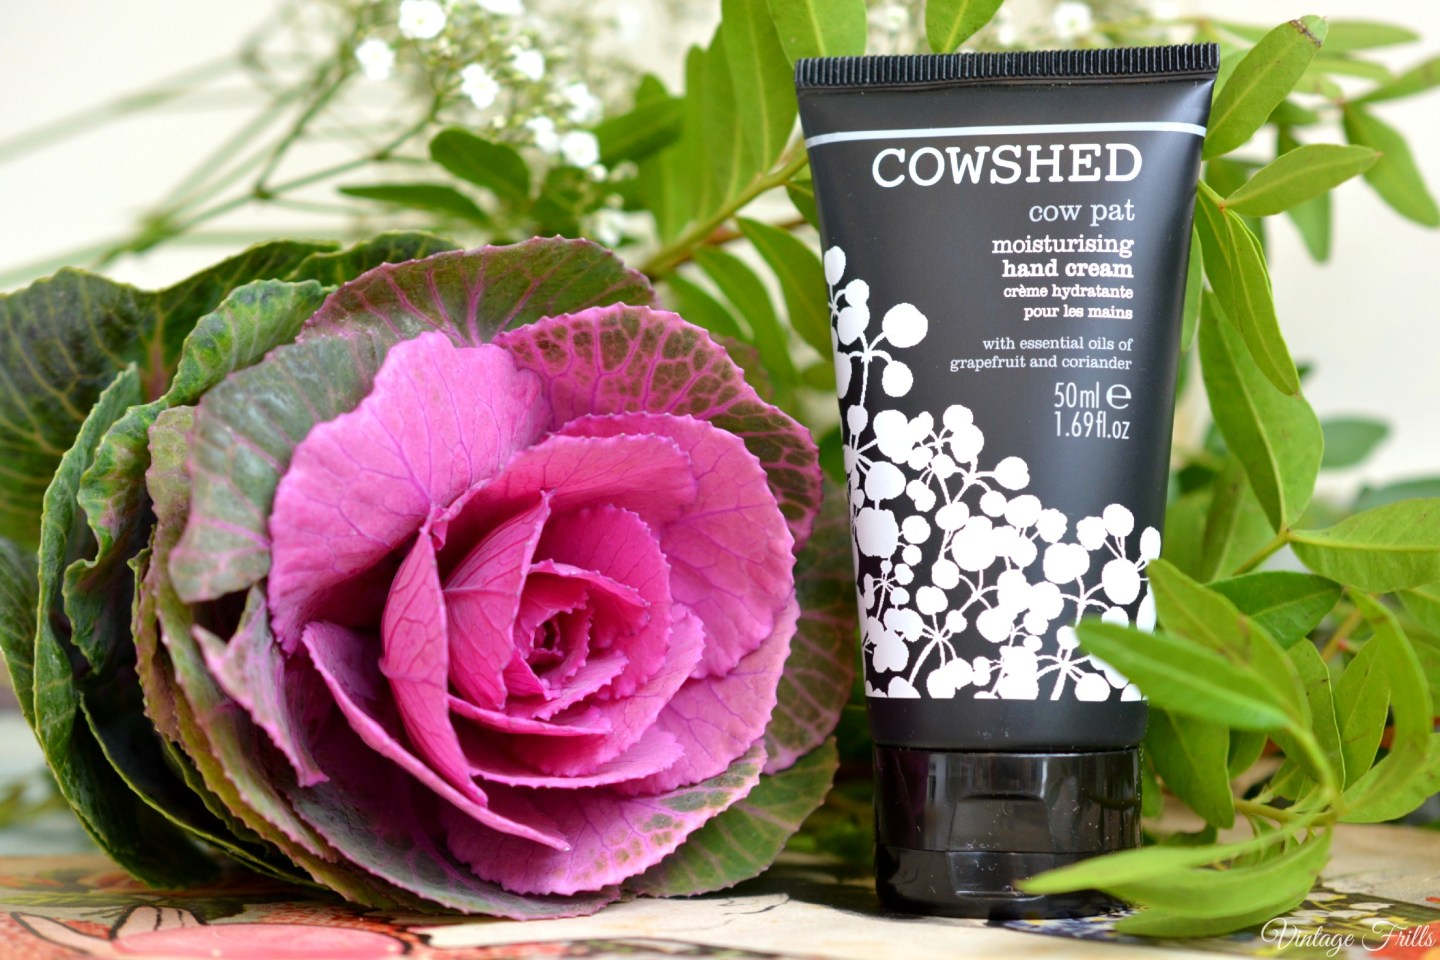 November 2015 Birchbox Review Cowshed Cow Pat Hand Cream